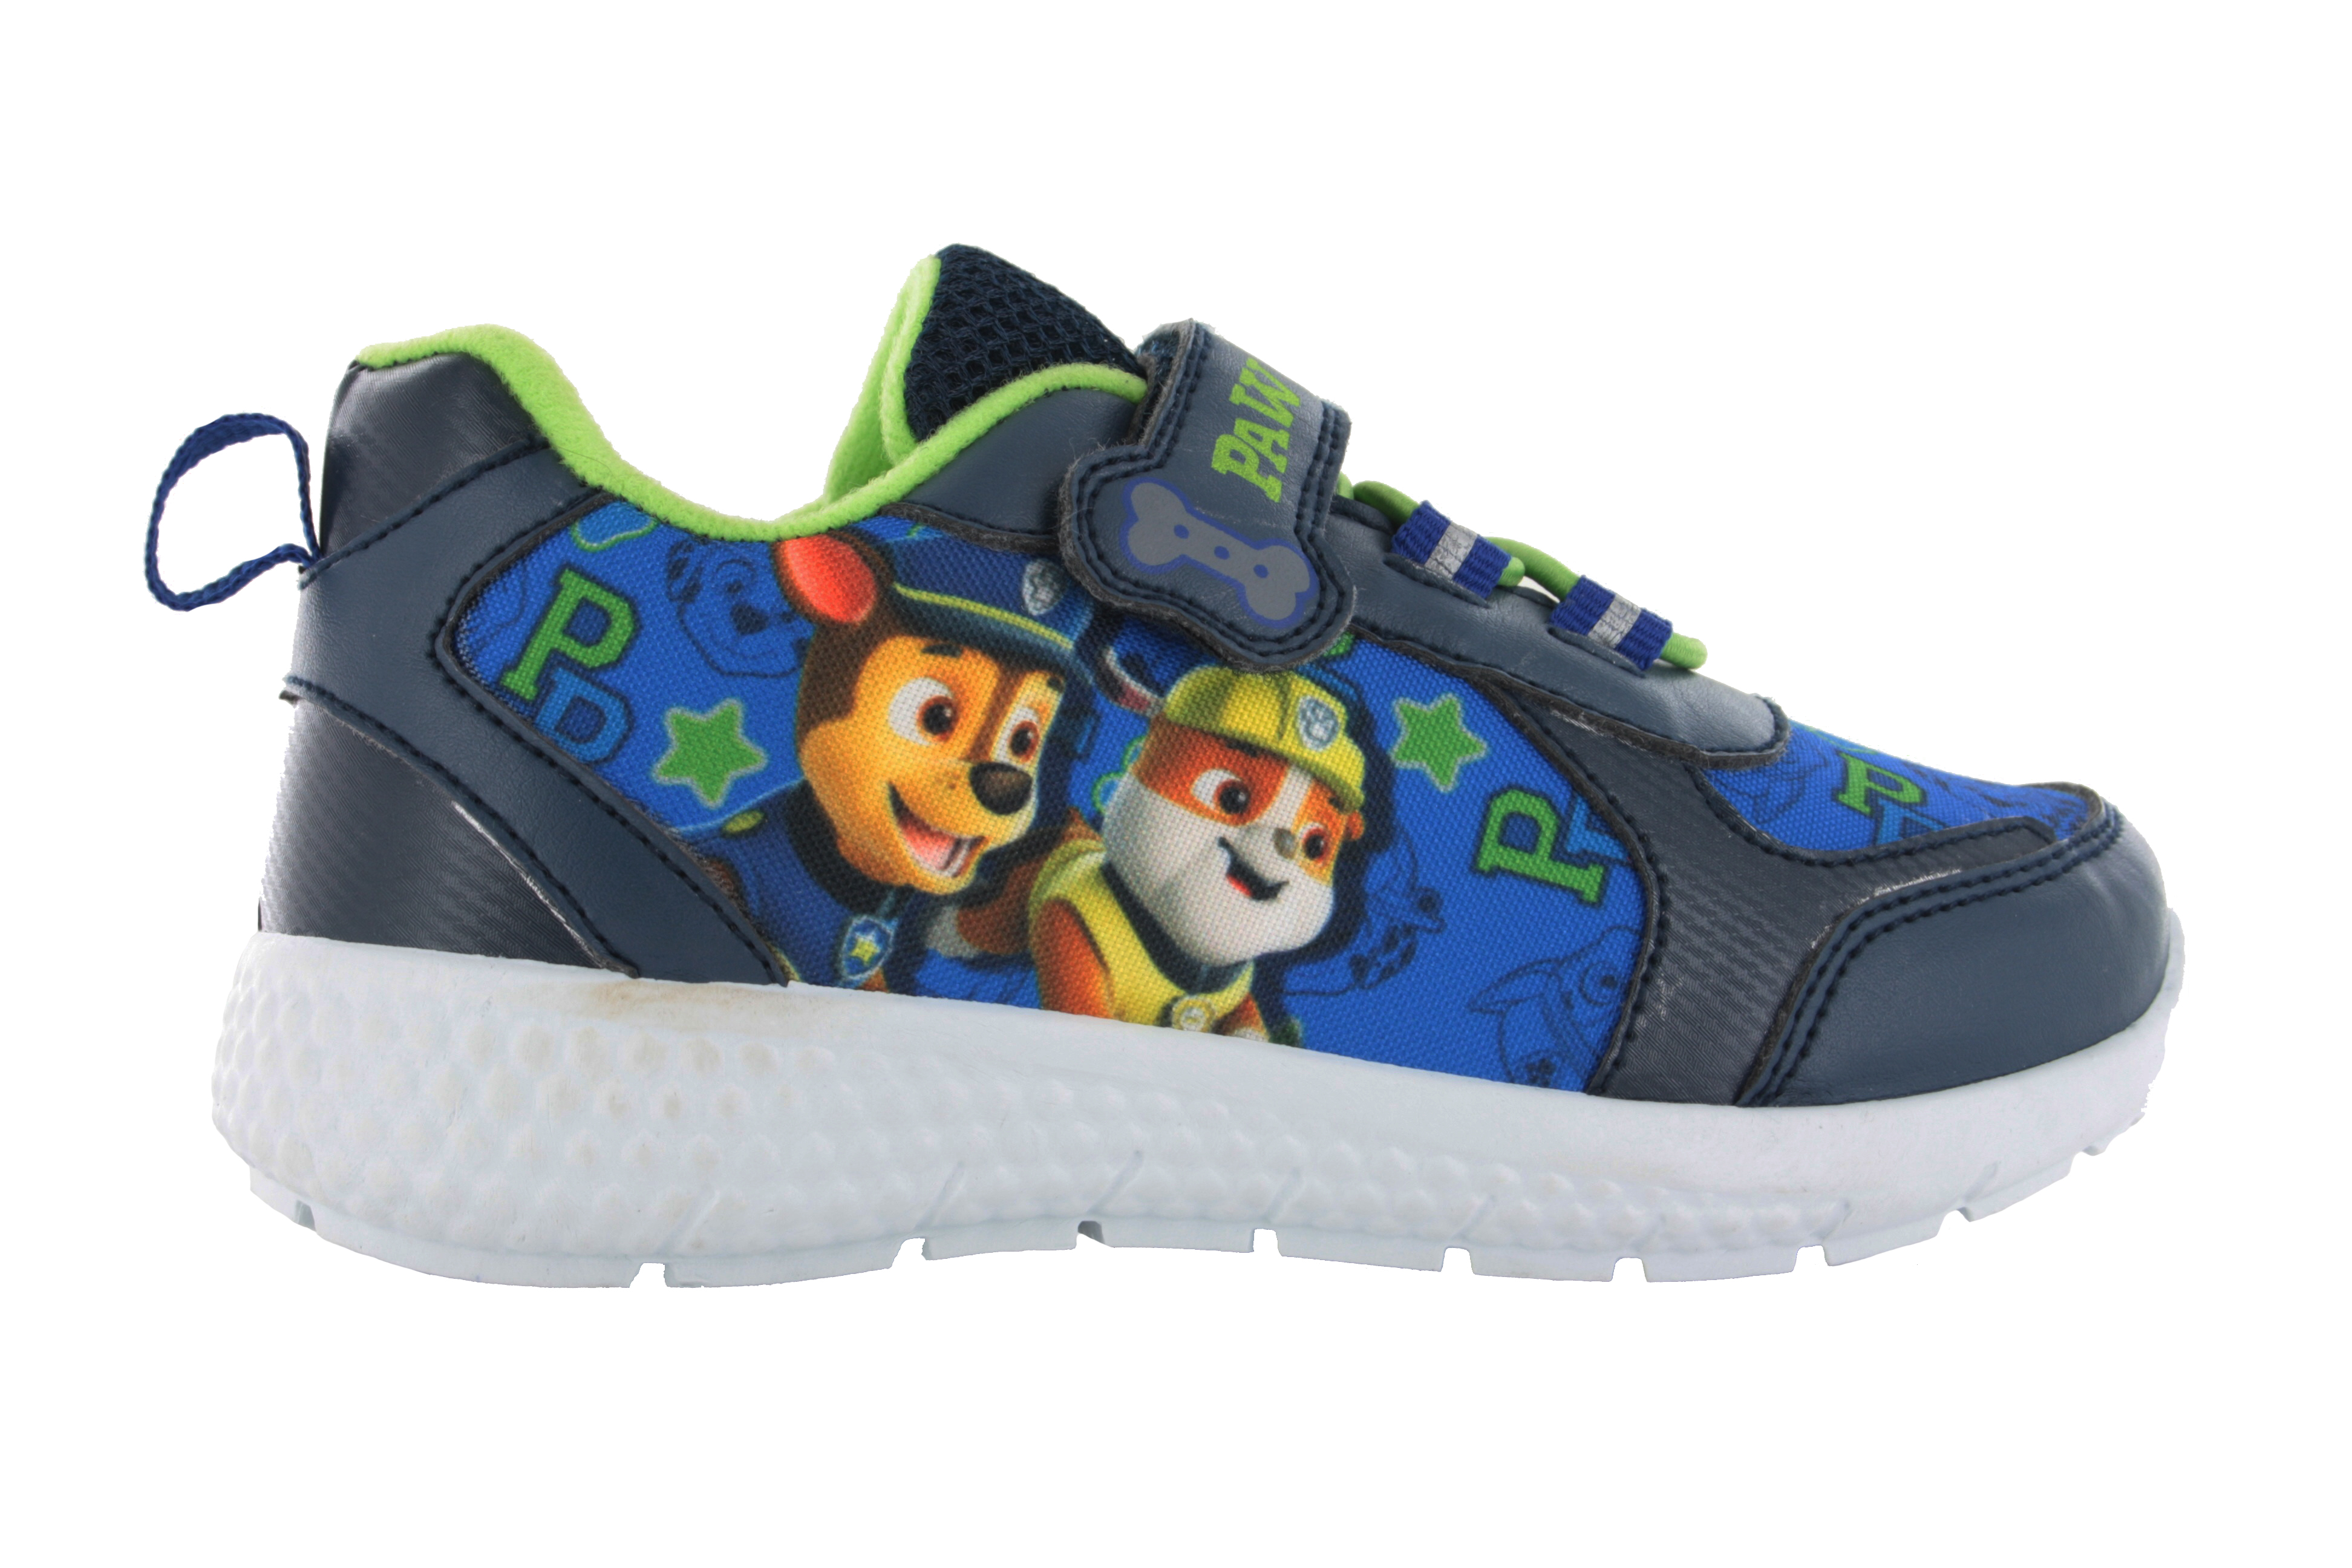 BOYS PAW PATROL CHARACTERS CASUAL TRAINERS SPORTS SHOES KIDS UK SIZE 5-10